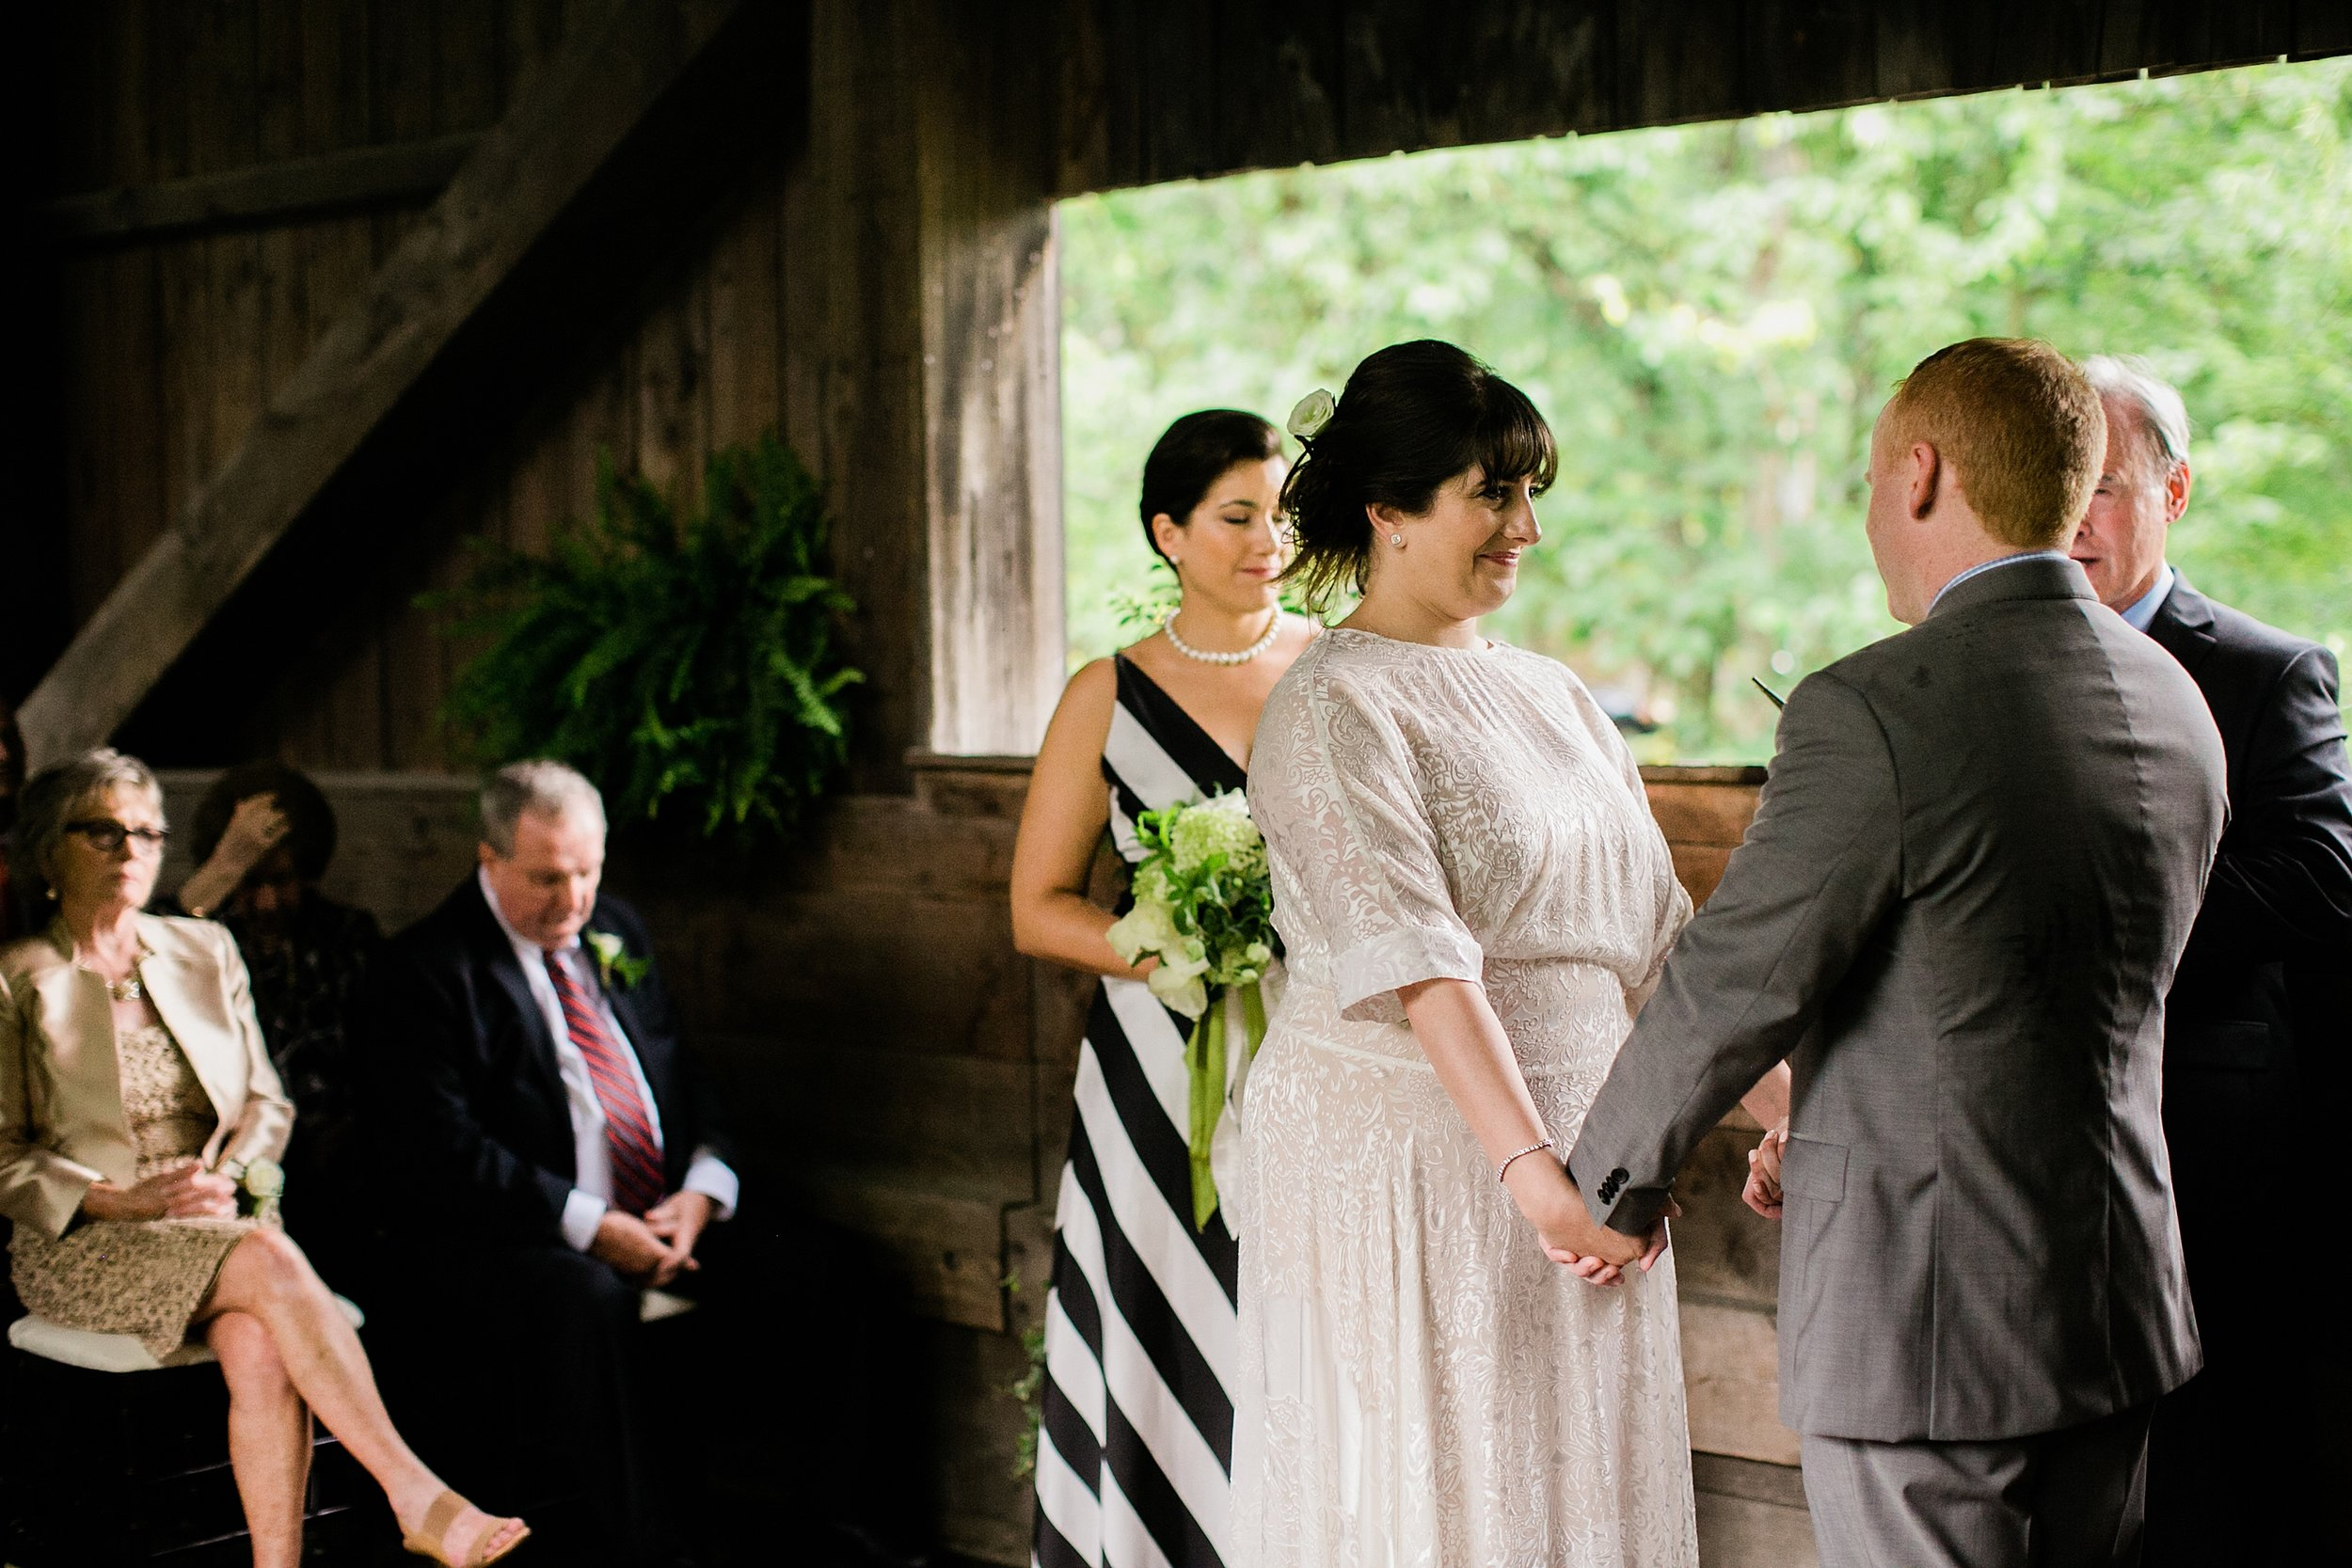 028-los-angeles-wedding-photography-todd-danforth-vermont.jpg